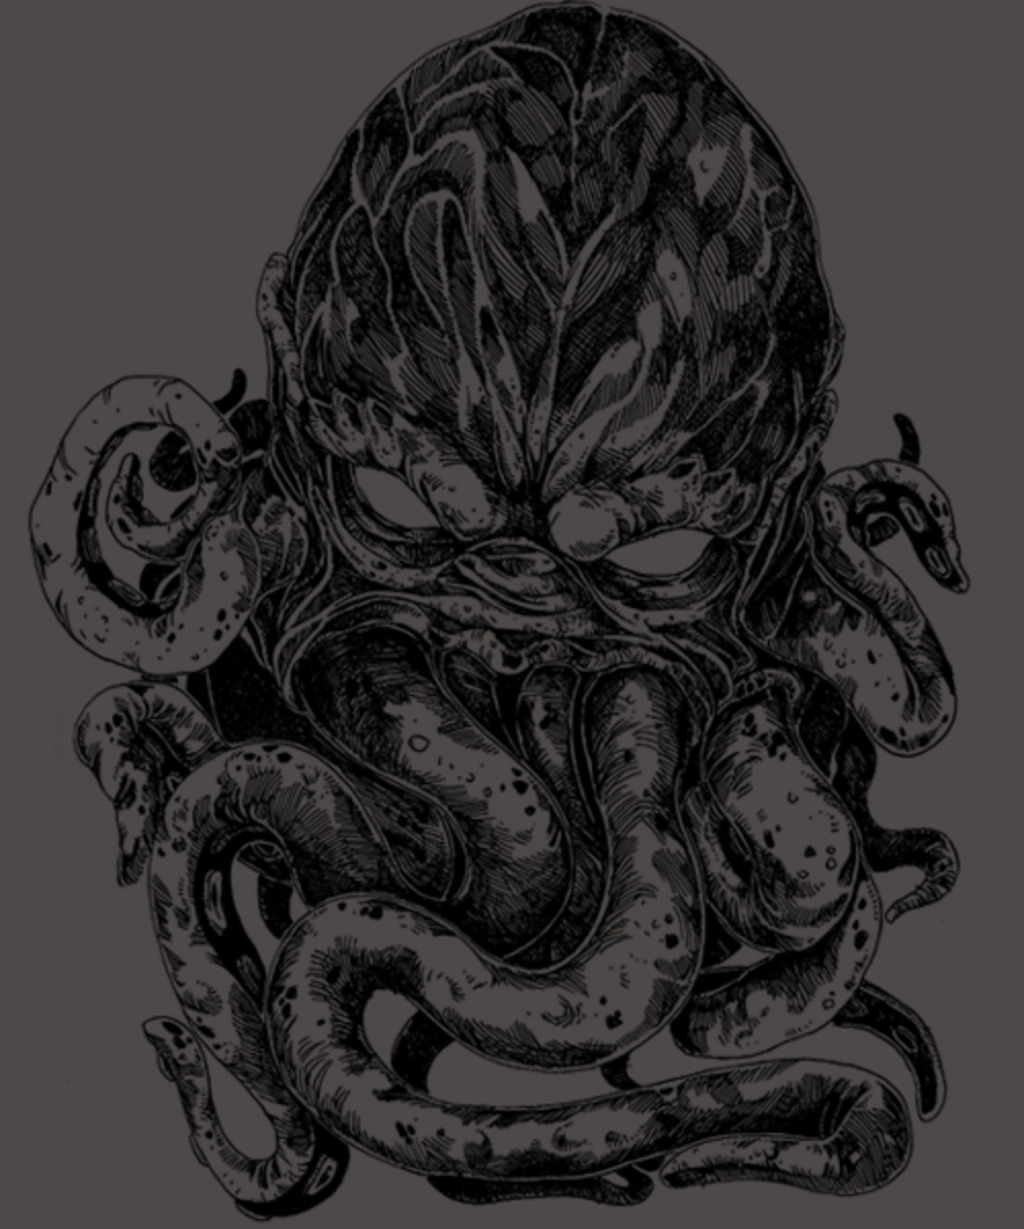 Qwertee: Cthulhu is Coming